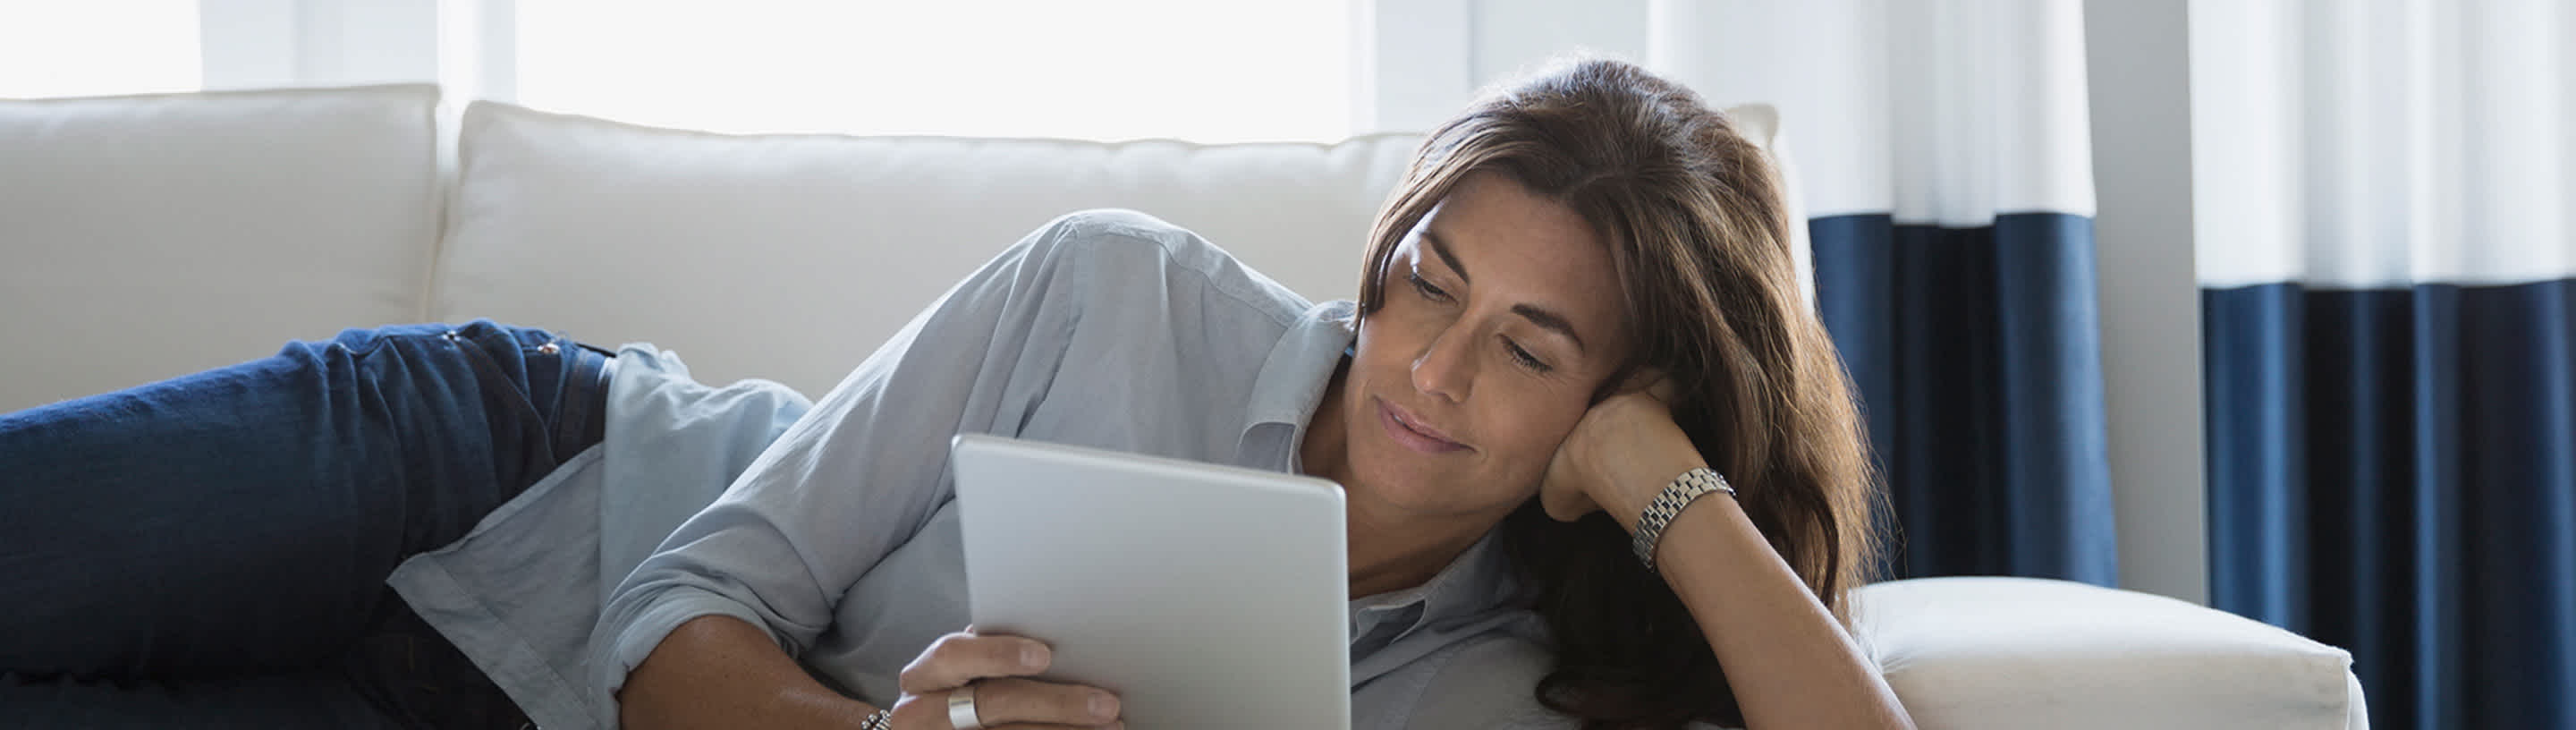 woman with a tablet lying on the couch